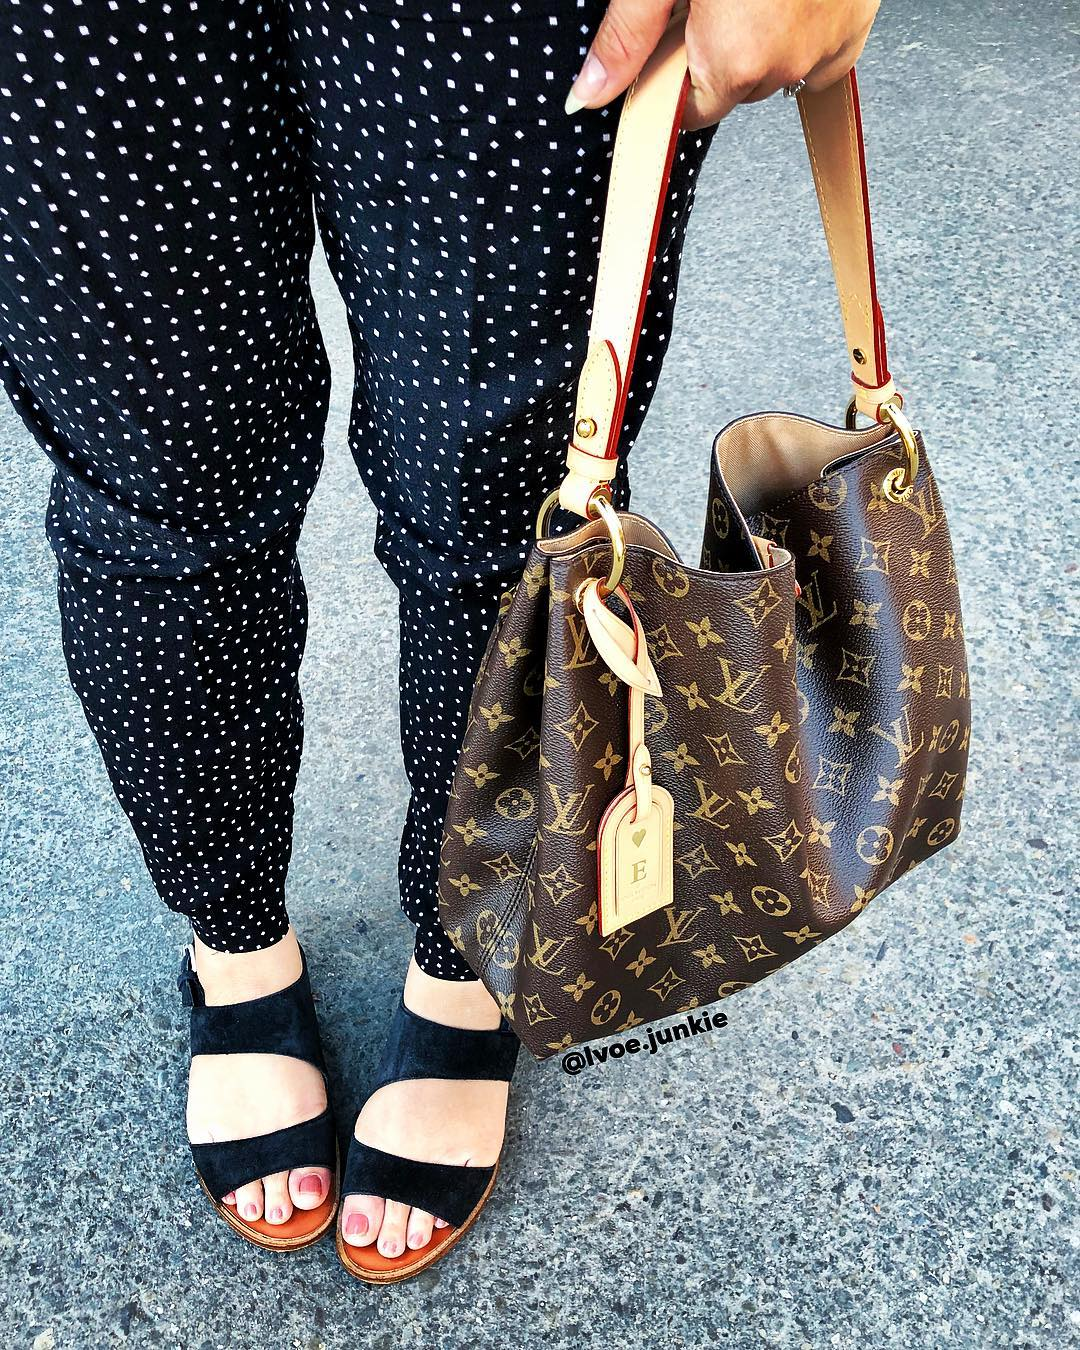 Louis Vuitton Monogram Is Back And Better Than Ever And